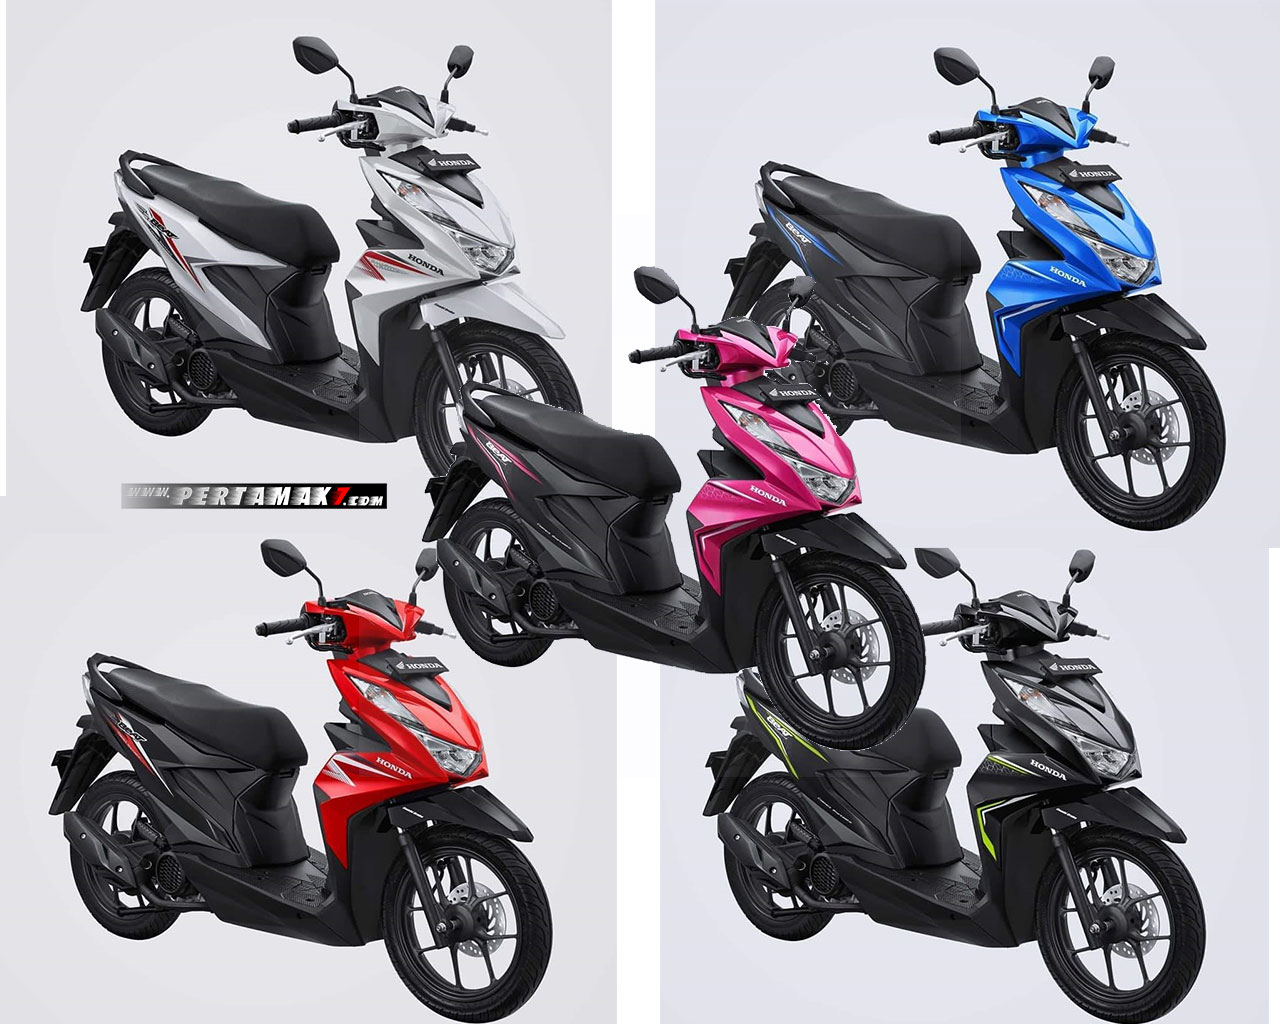 Pilihan Warna Honda BeAT Facelift 2020